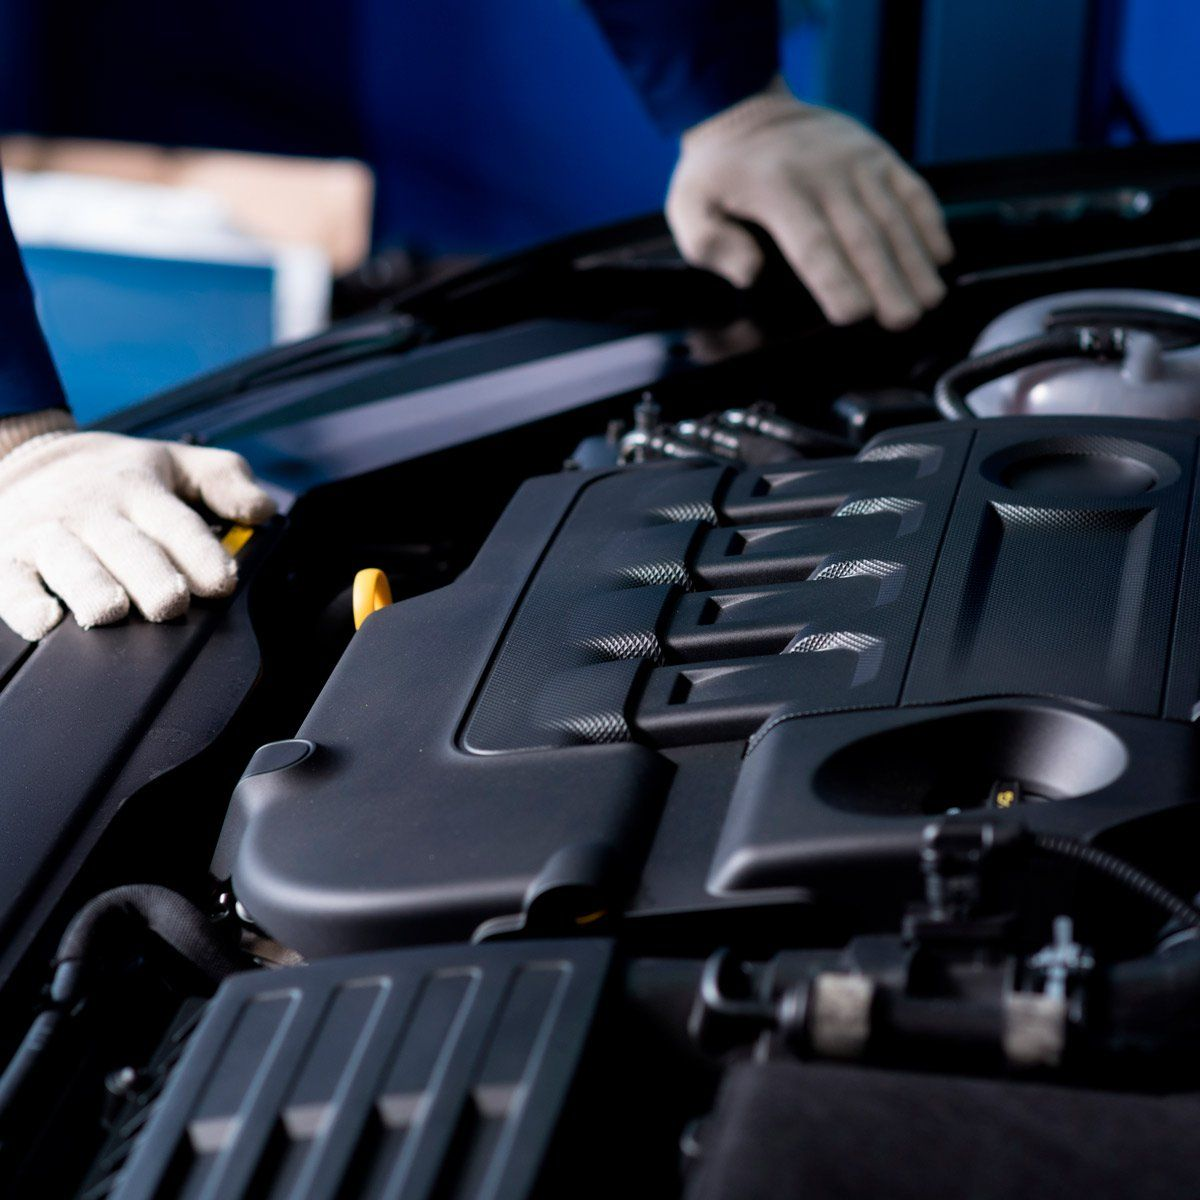 How Much Does it Cost to Replace an Engine? Auto repair